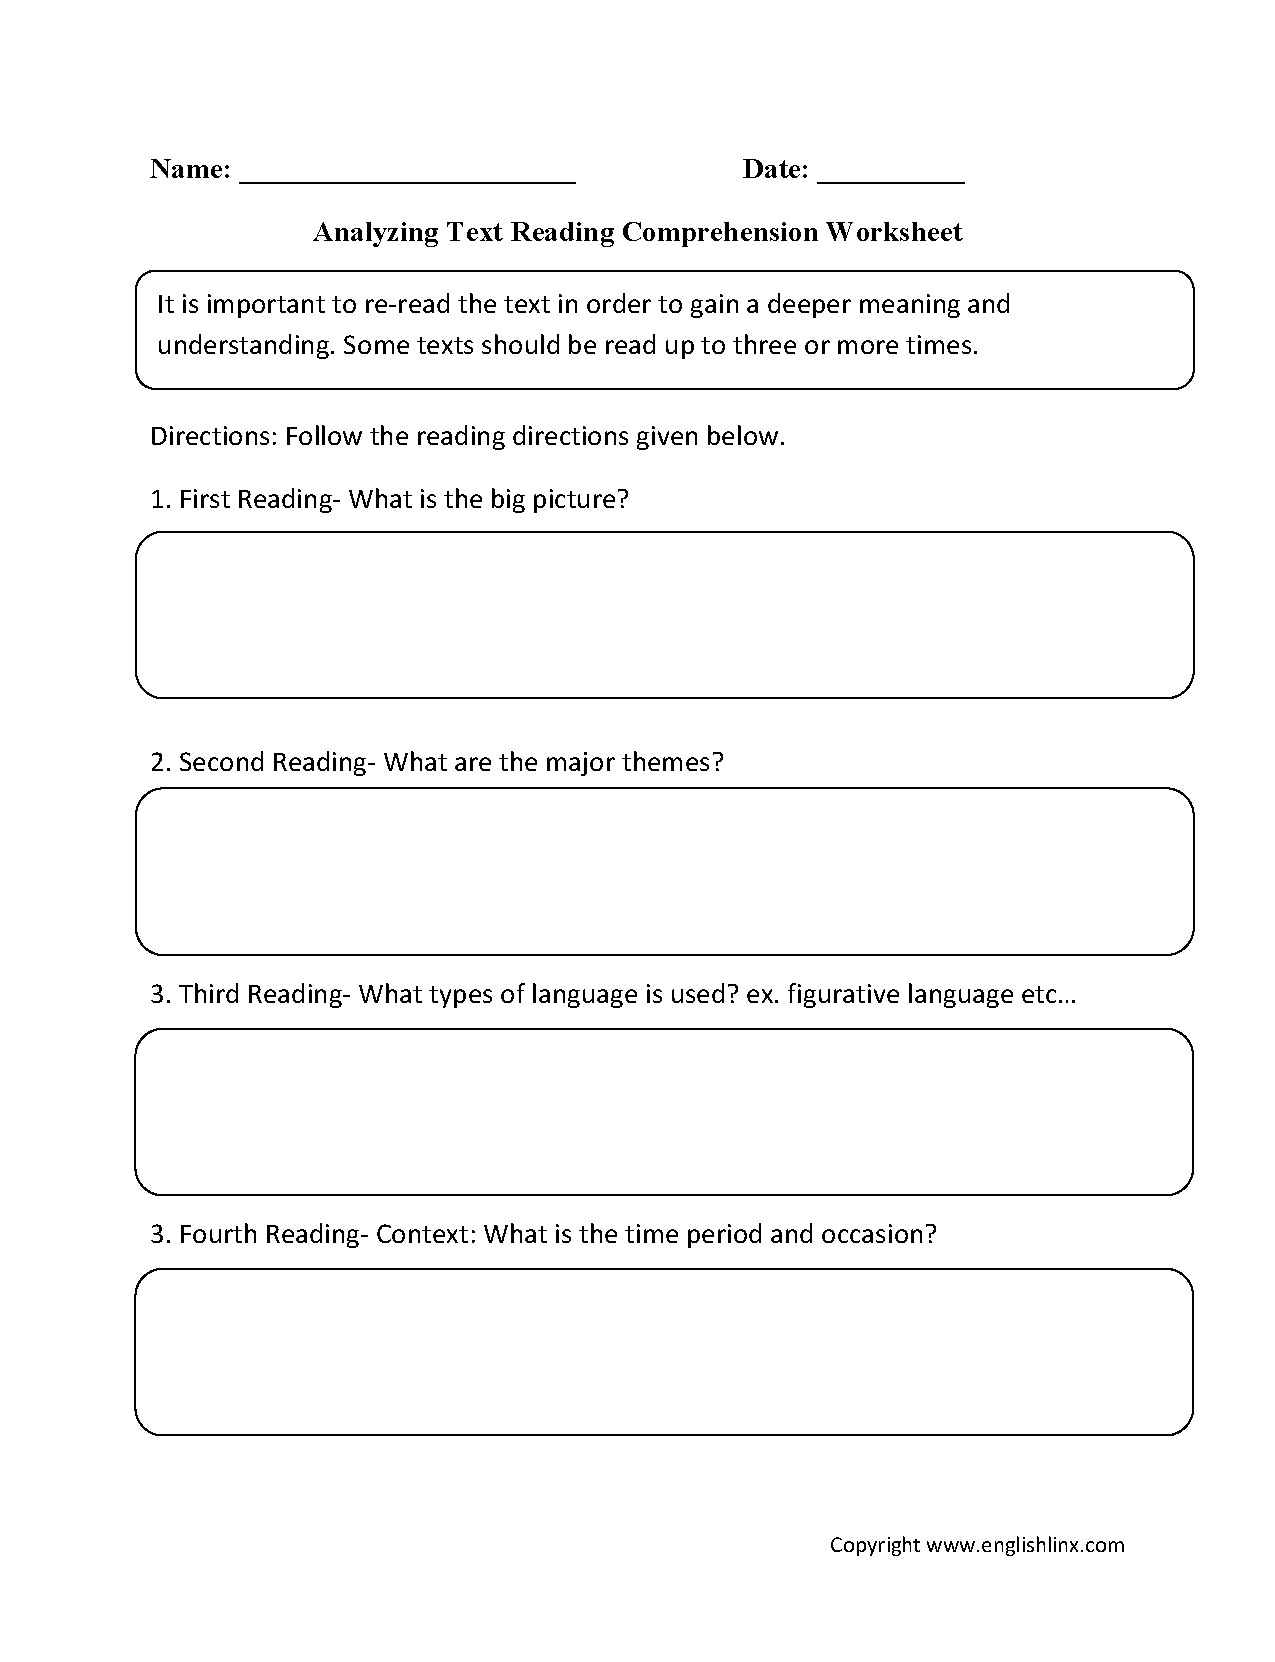 Worksheets Reading Comprehension Worksheet englishlinx com reading comprehension worksheets worksheets